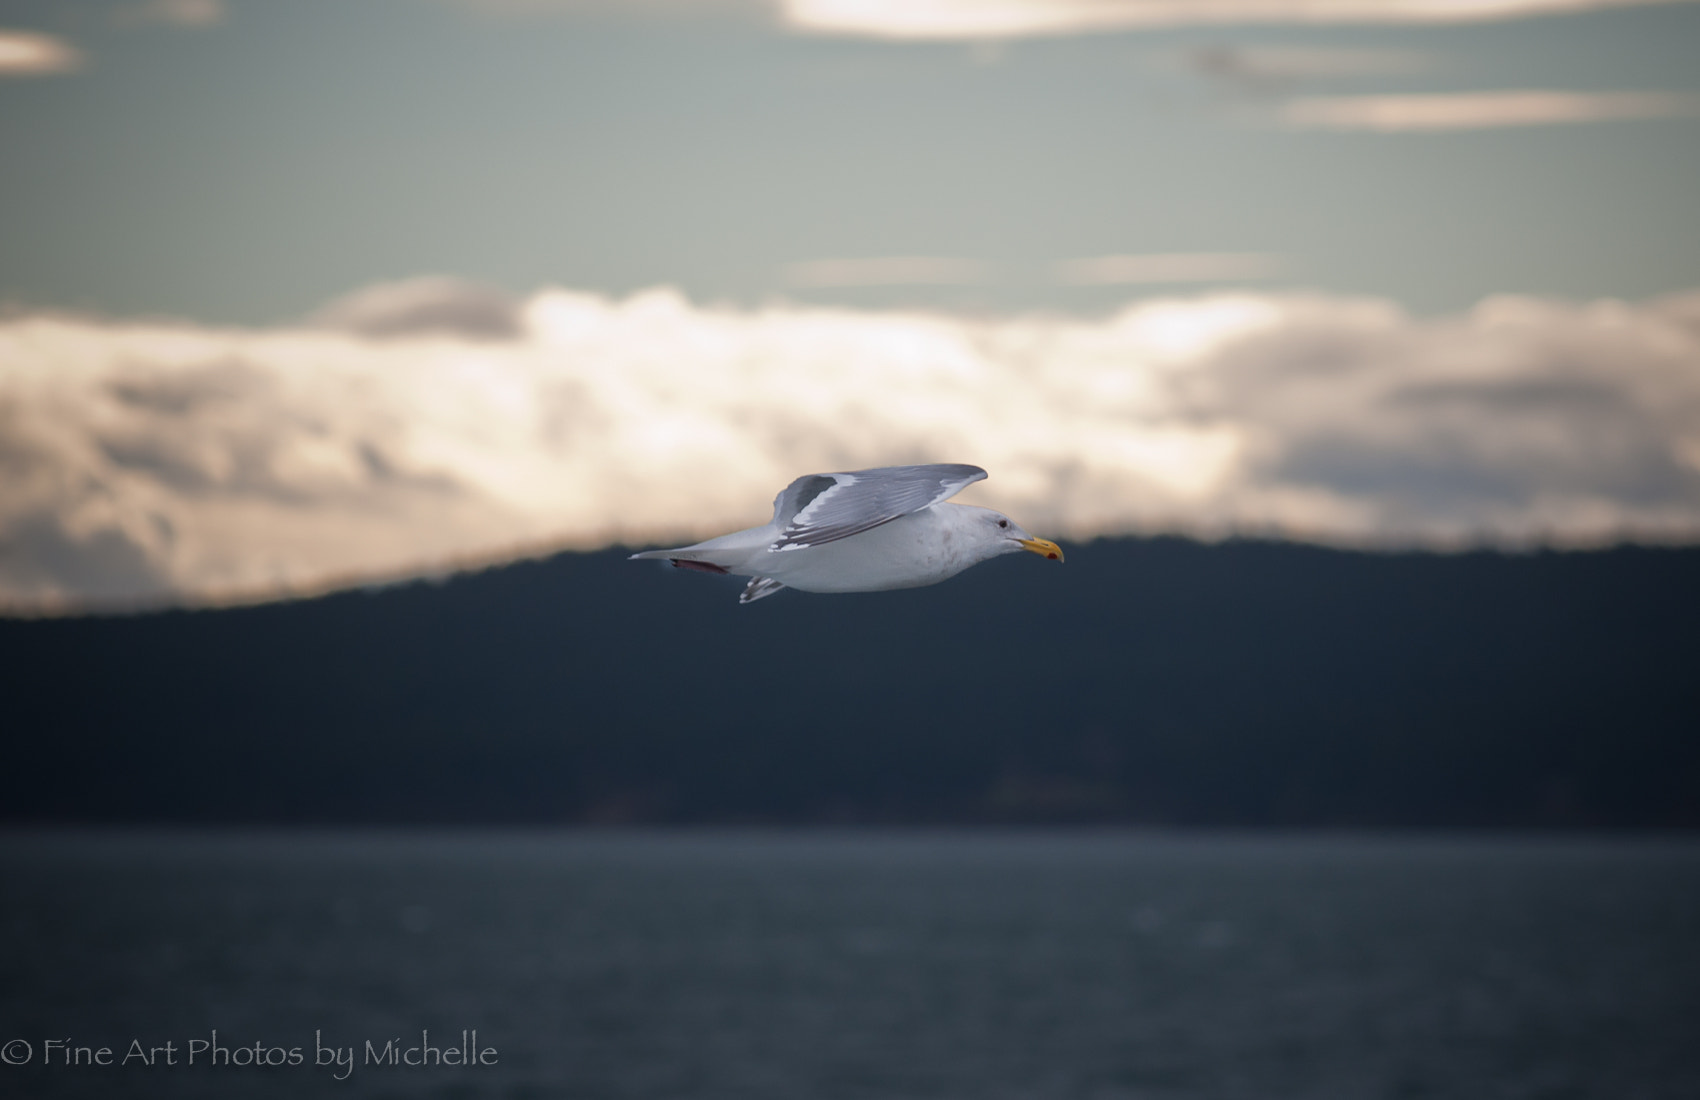 Photograph Flying Along the Horizon  by Michelle Stevenson on 500px